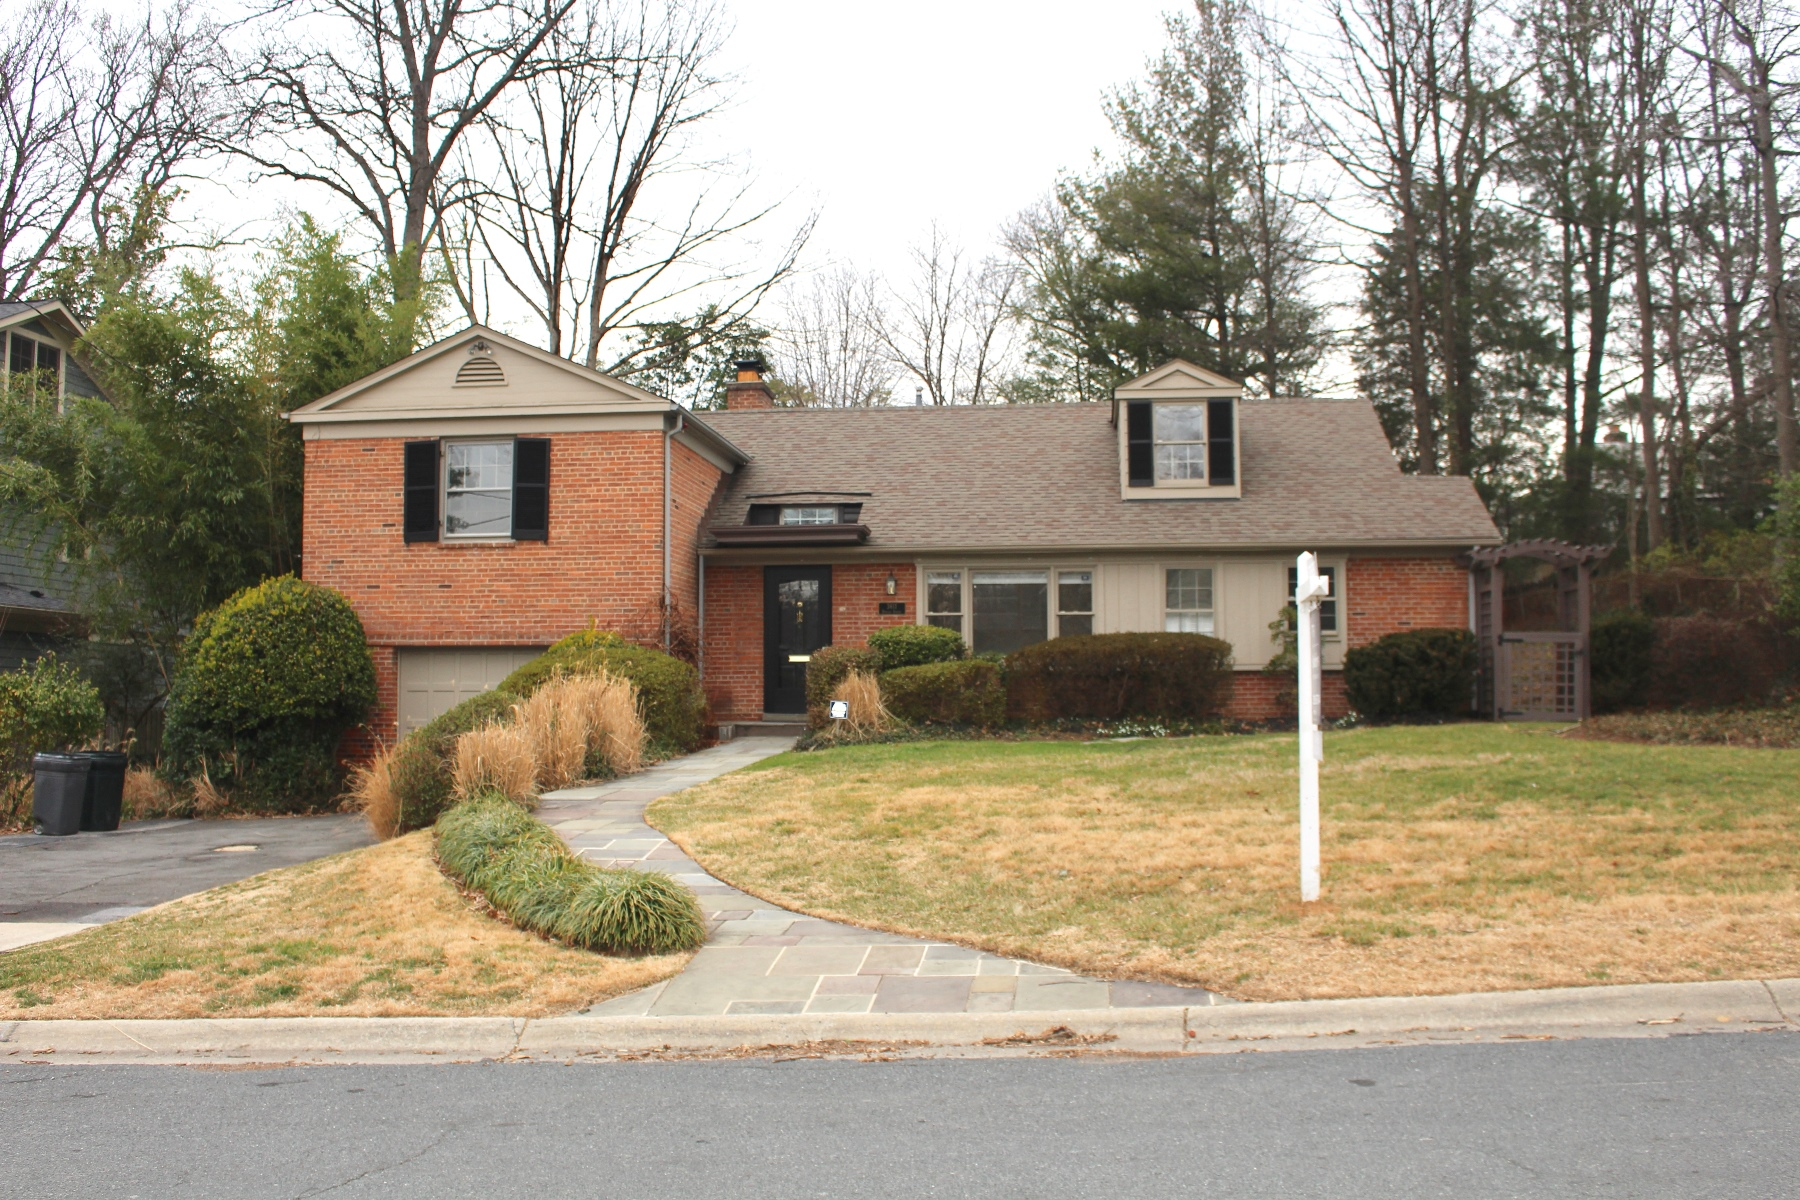 Single Family Home for Rent at 3611 Dunlop Street, Chevy Chase Chevy Chase, Maryland 20815 United States